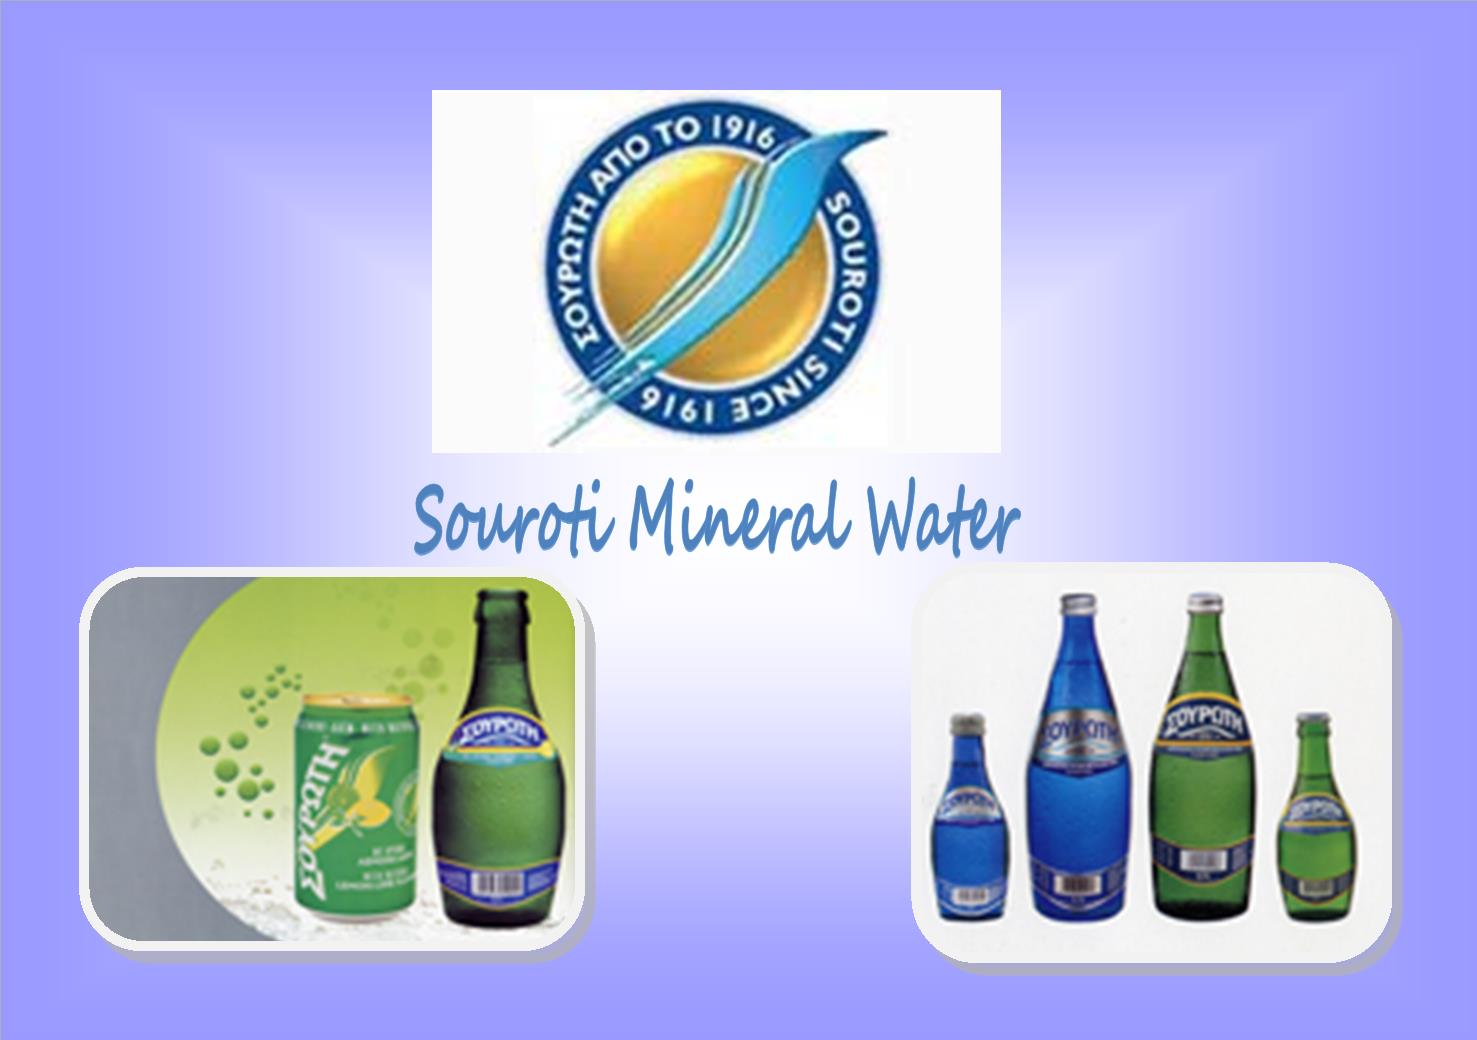 Souroti Mineral Water